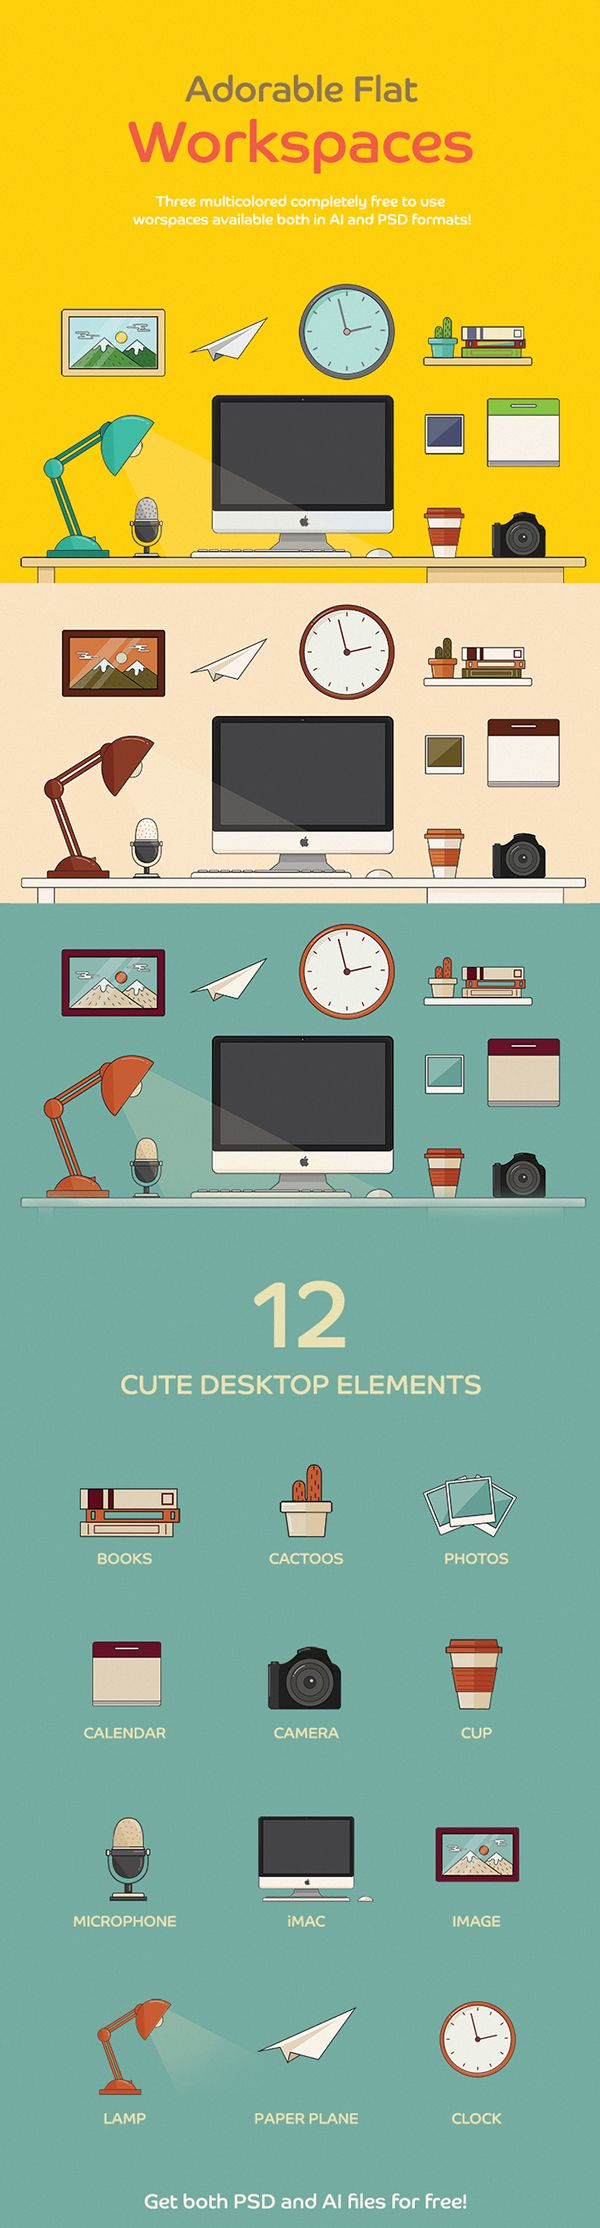 FREE Adorable Flat Workspace on Behance